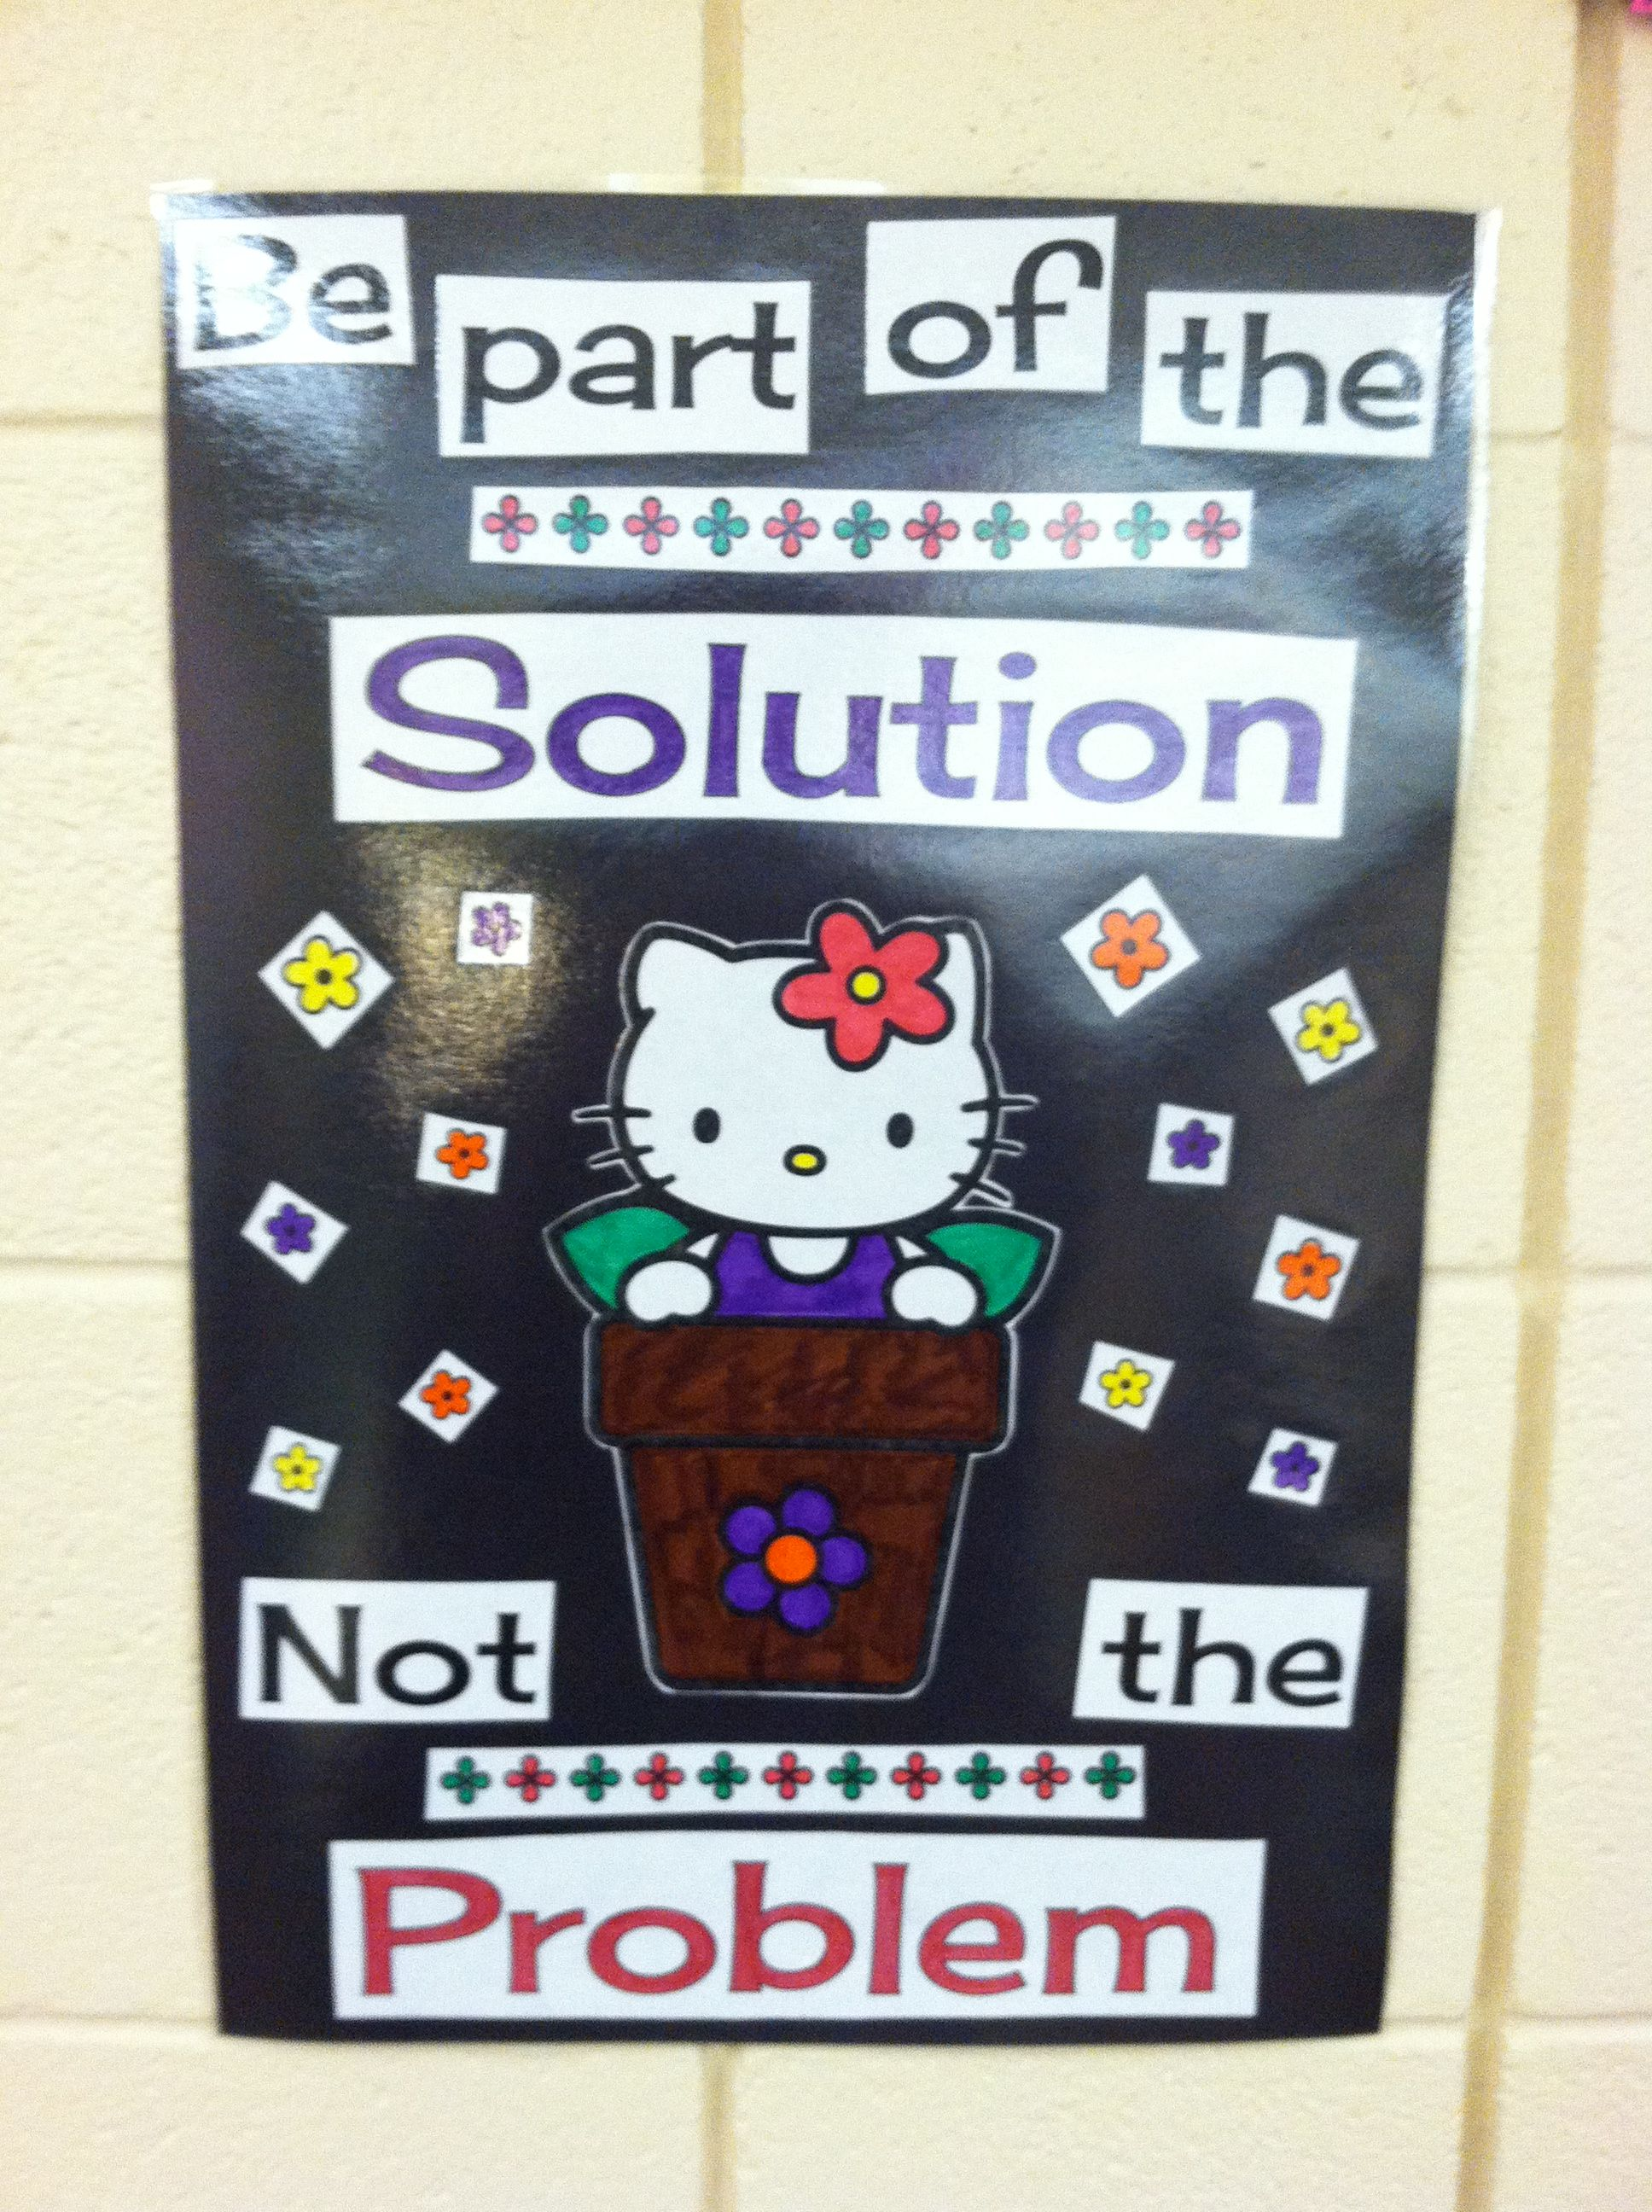 Always be part of the Solution!